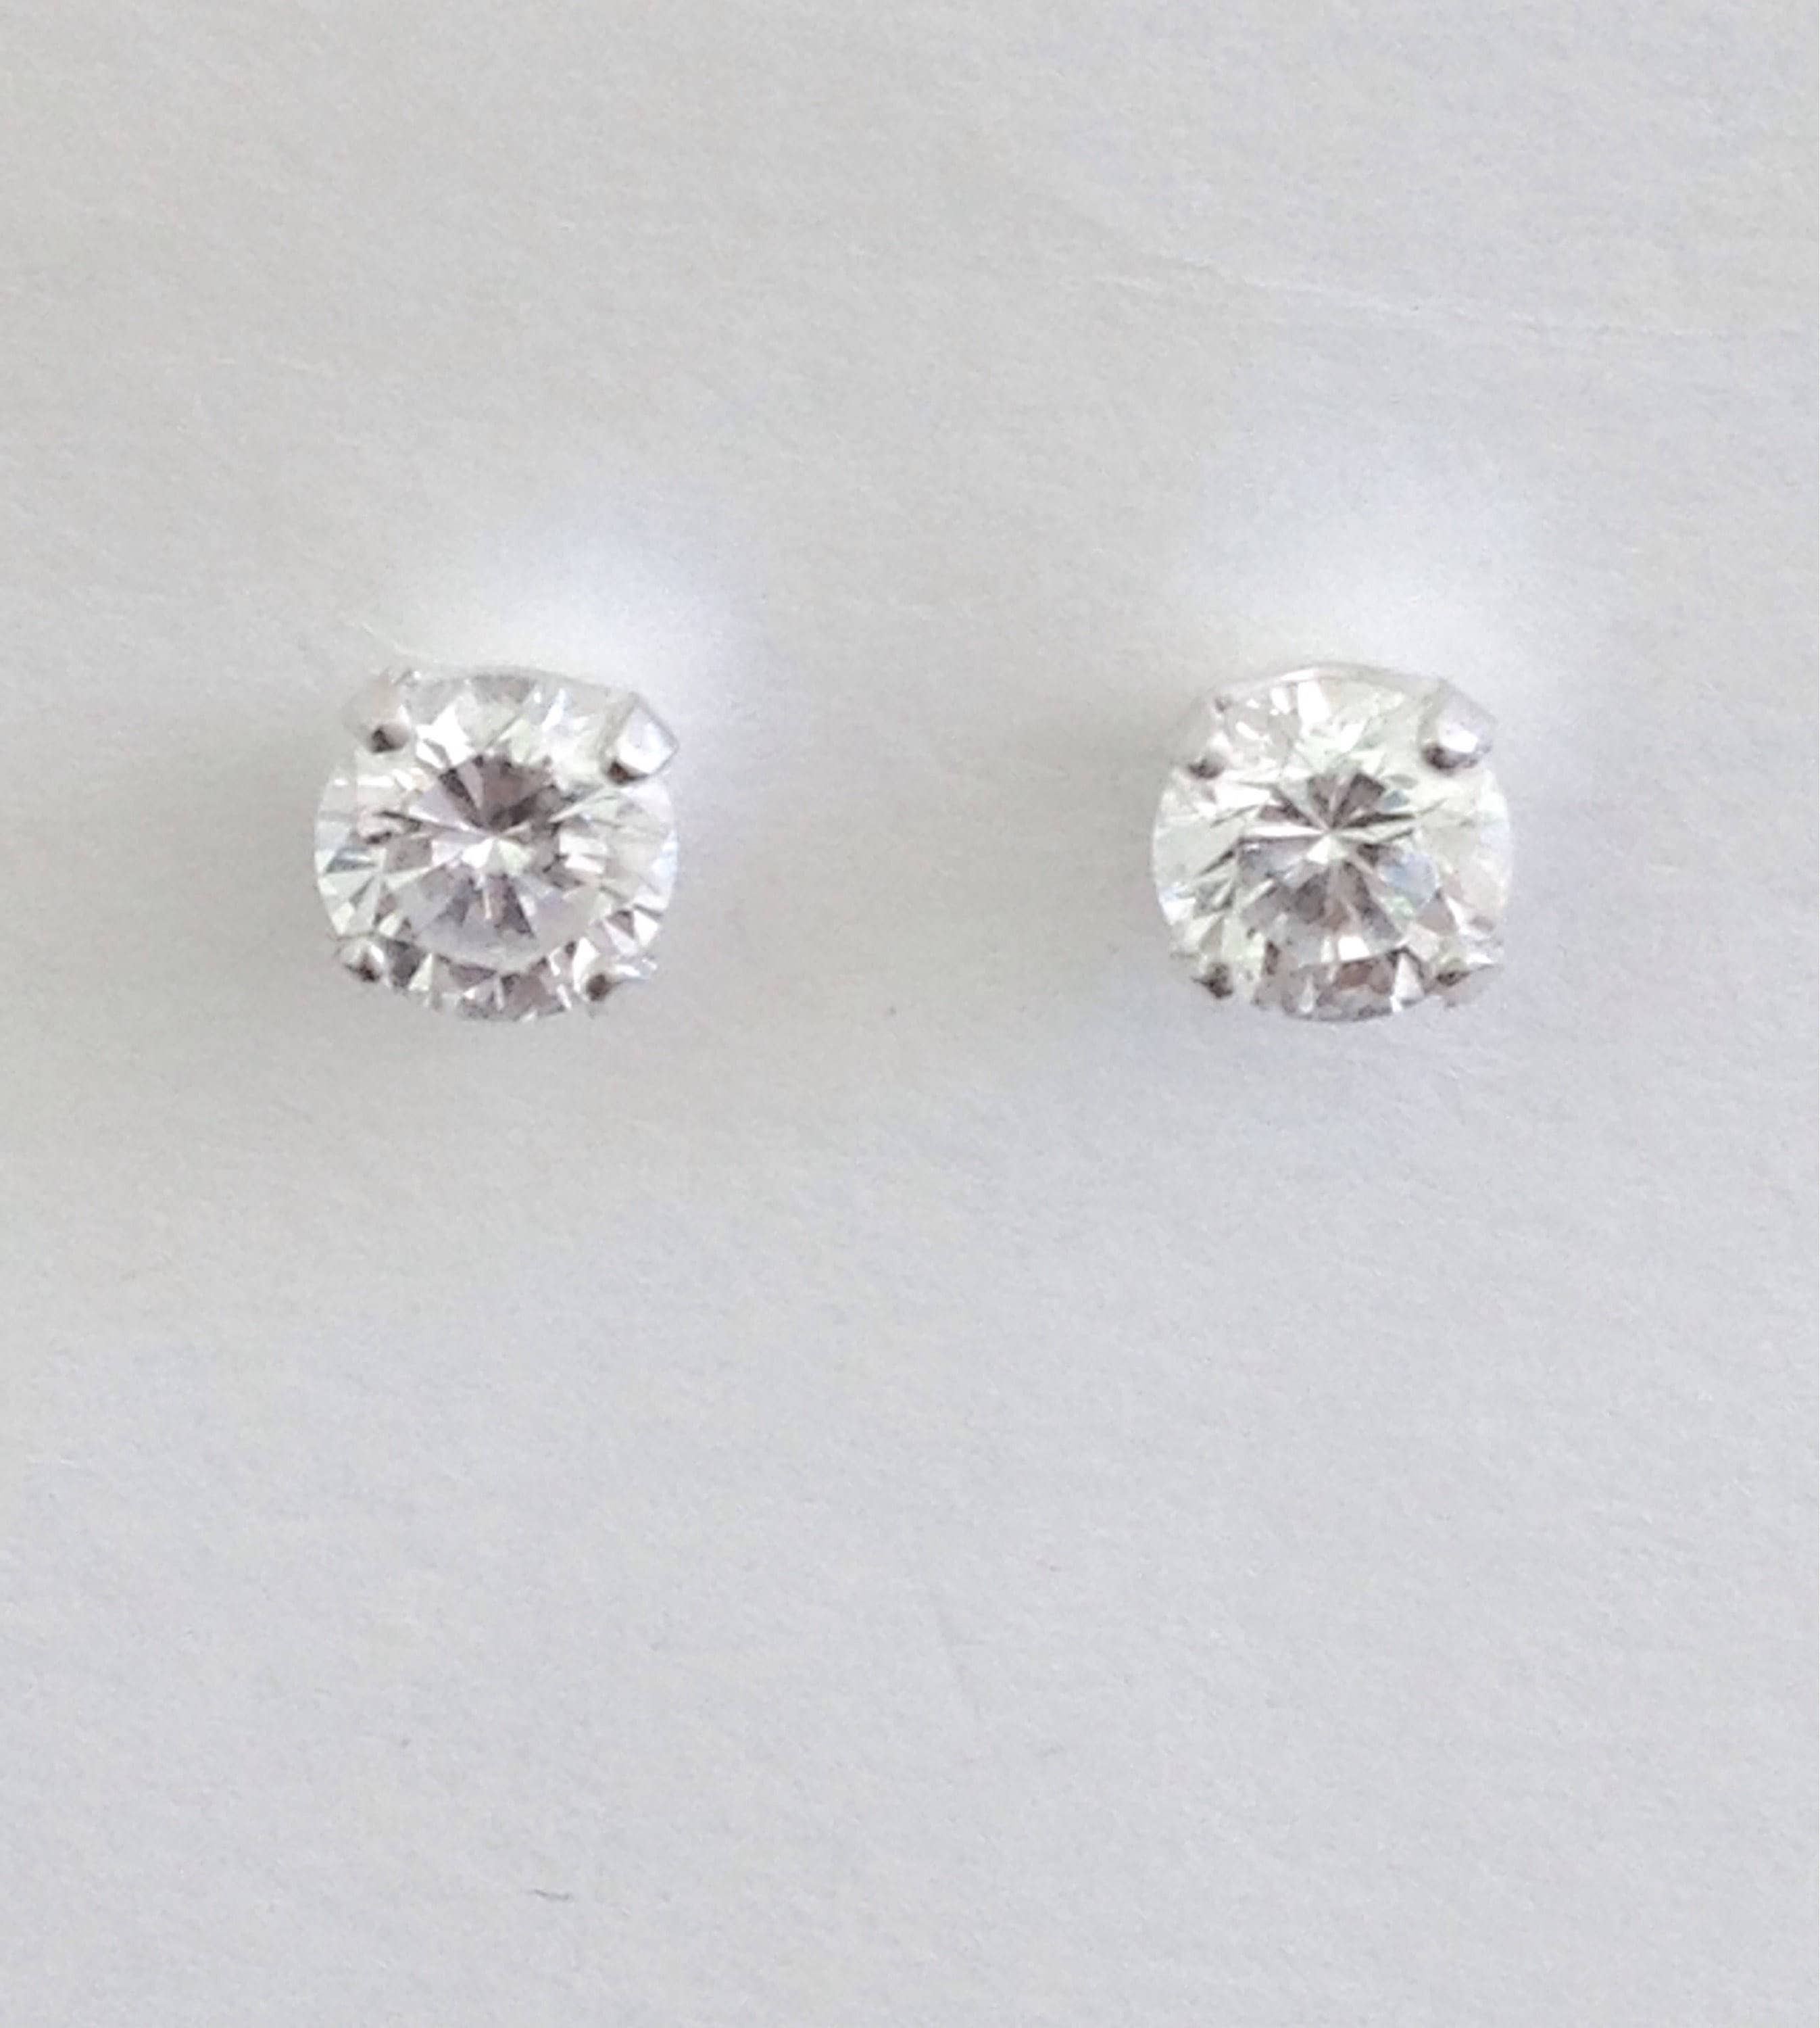 studs solitaire gold diamond rounbd white earrings stud